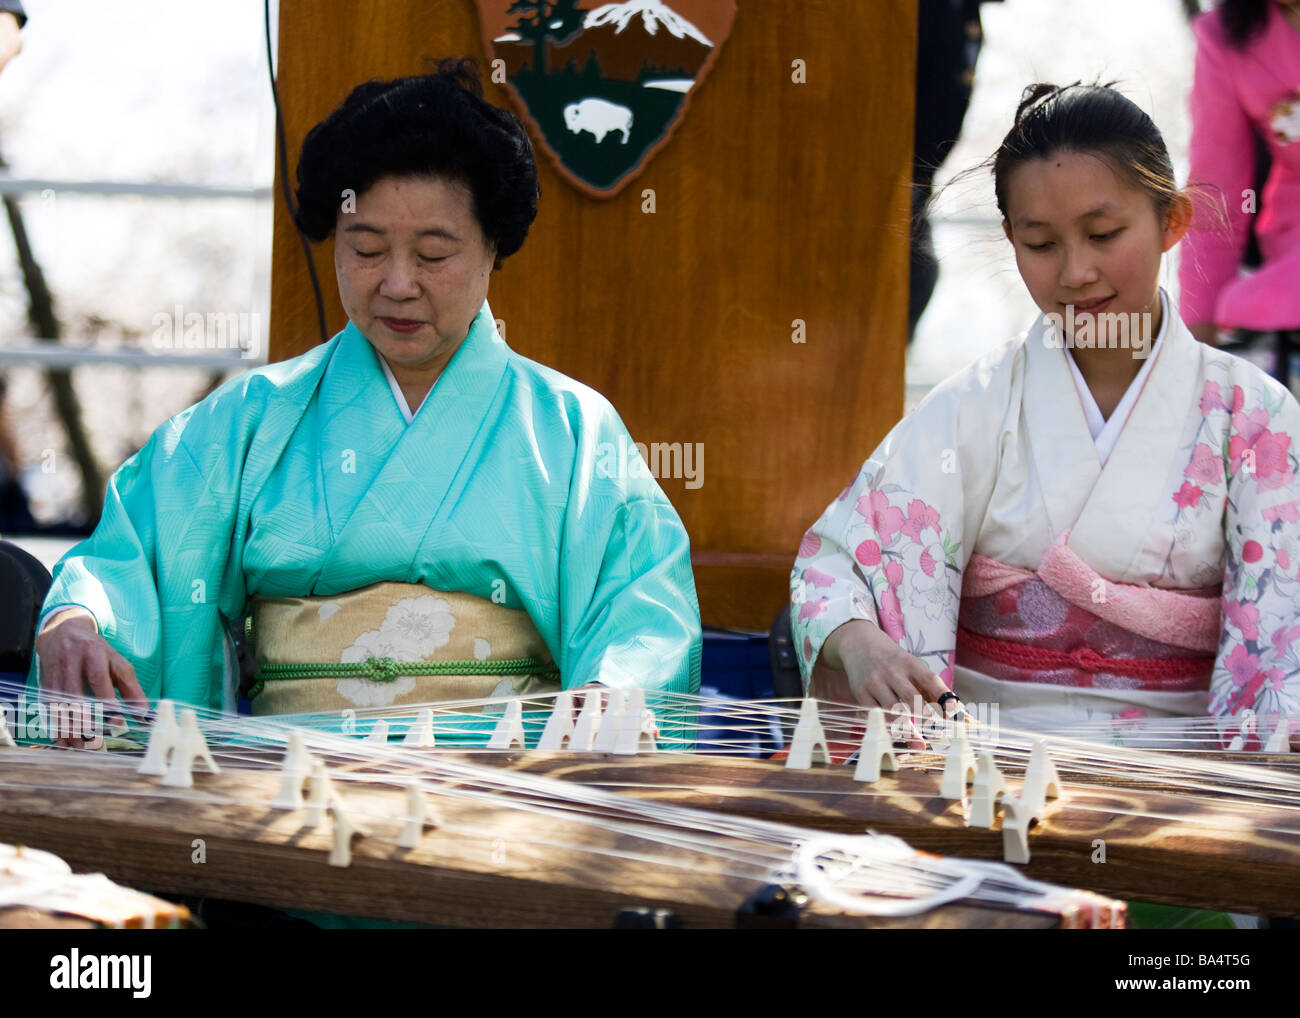 Japan women playing with them self foto